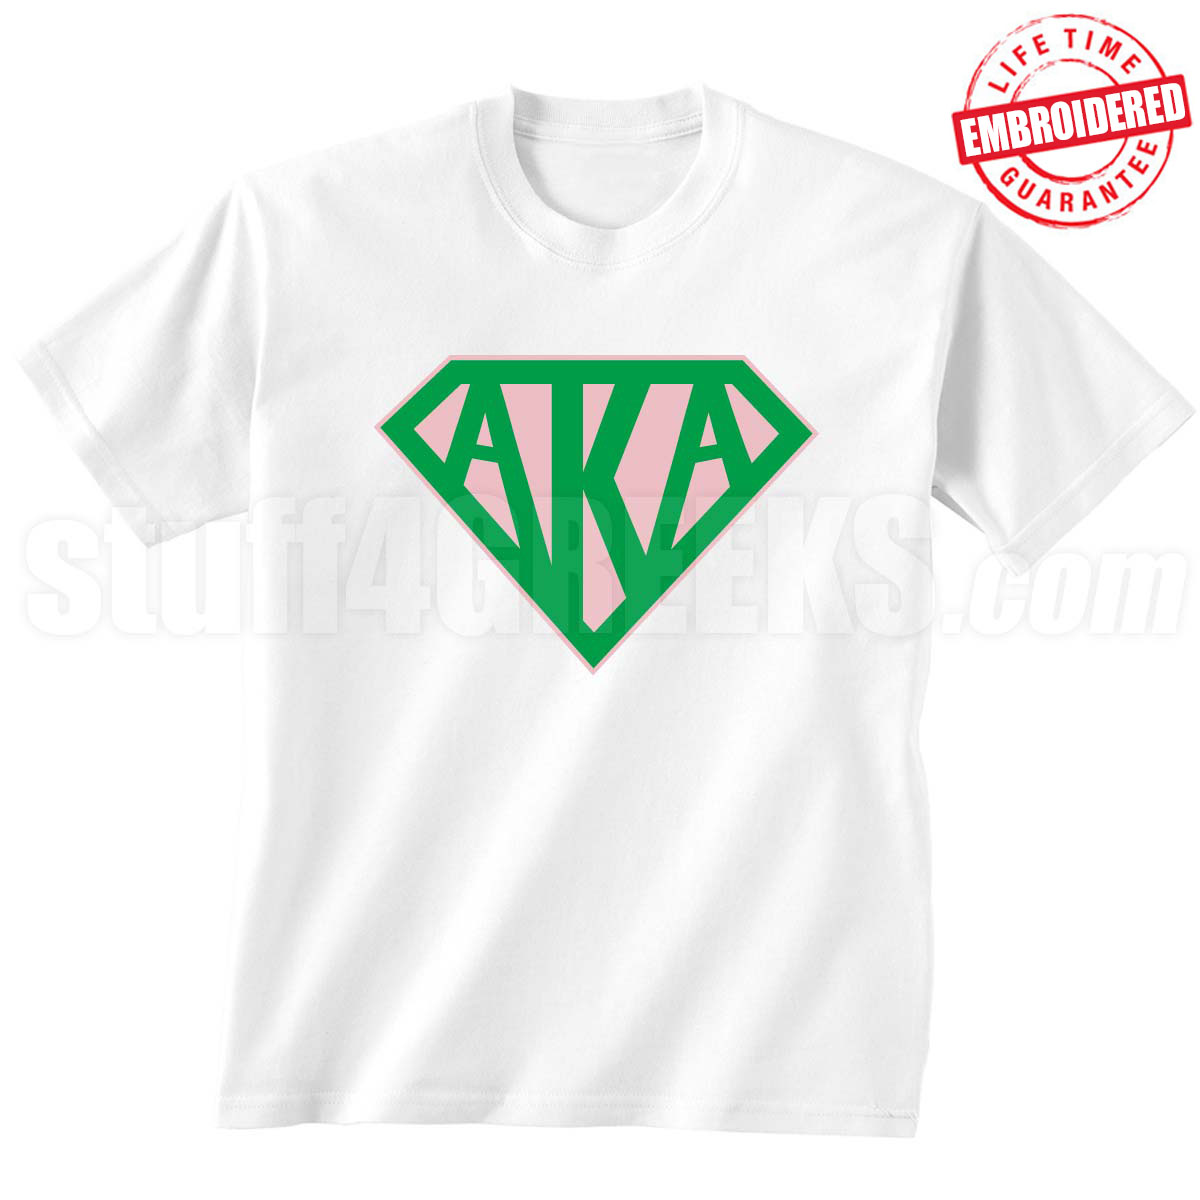 04a43f2cdd4 ... Greek Letters Inside Superman Shield, White - EMBROIDERED. Alpha Phi  Omega T-Shirt